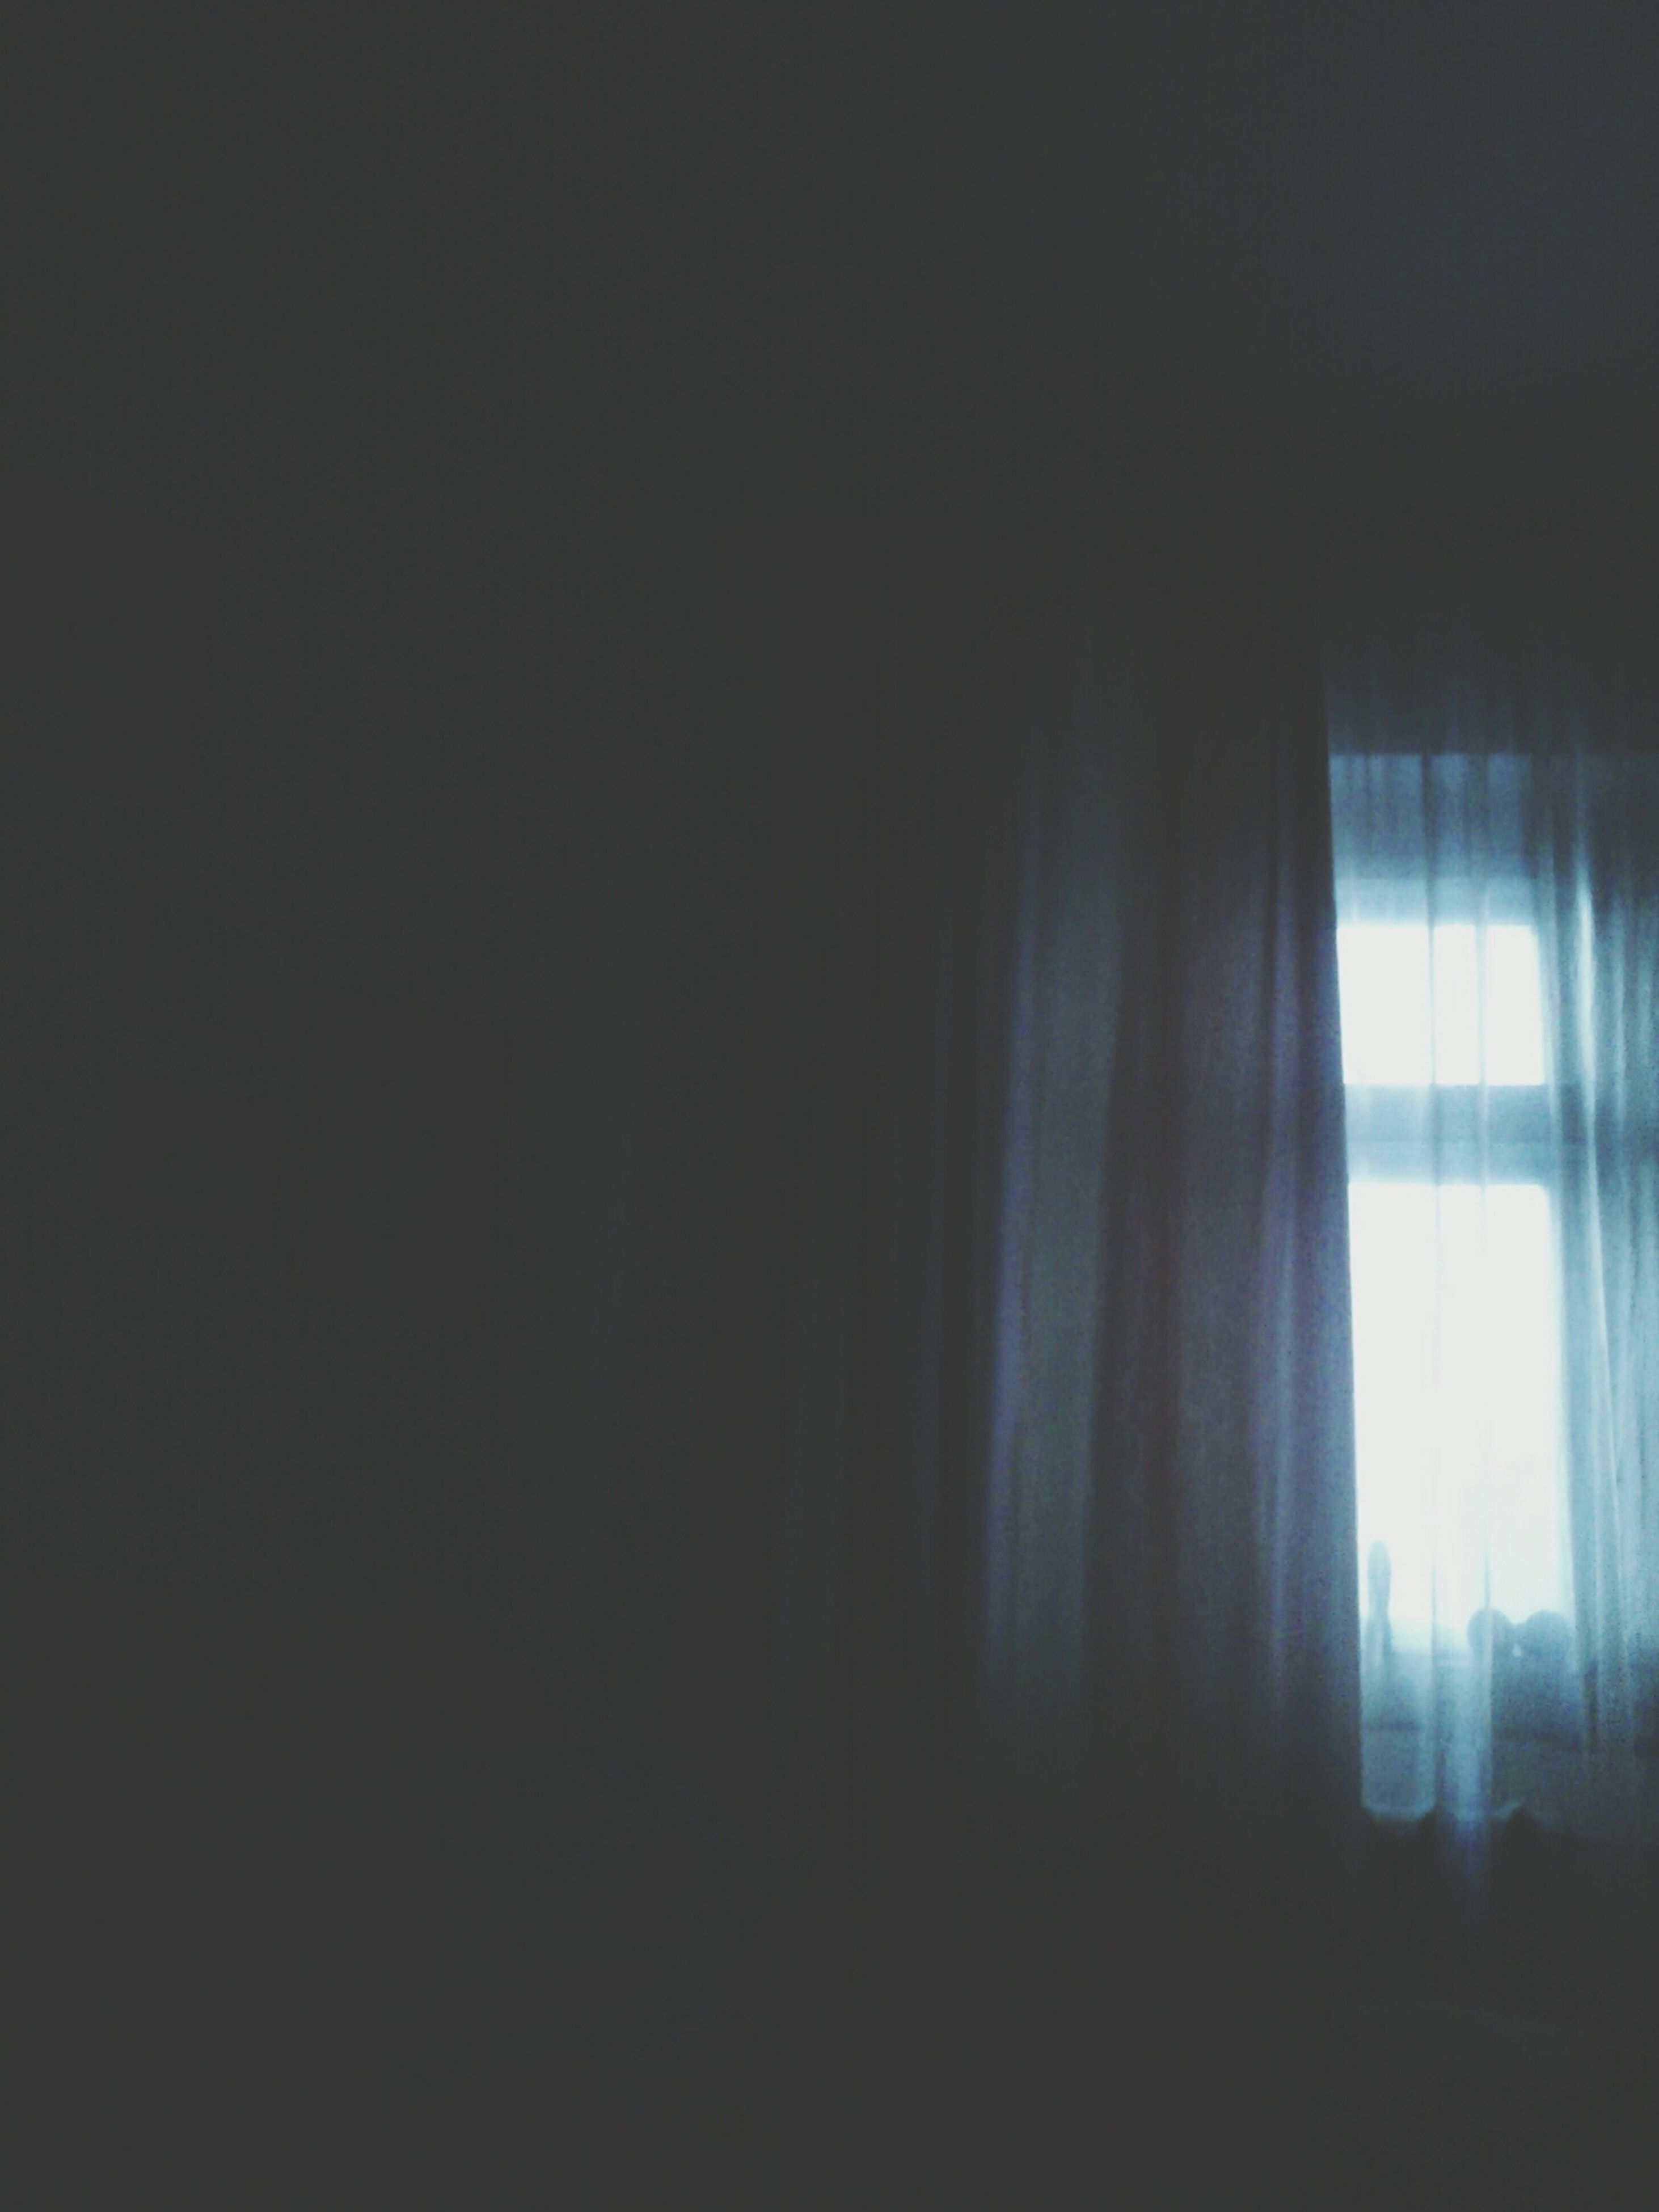 indoors, window, curtain, home interior, dark, built structure, copy space, sunlight, architecture, house, wall - building feature, glass - material, no people, transparent, day, wall, shadow, silhouette, absence, room